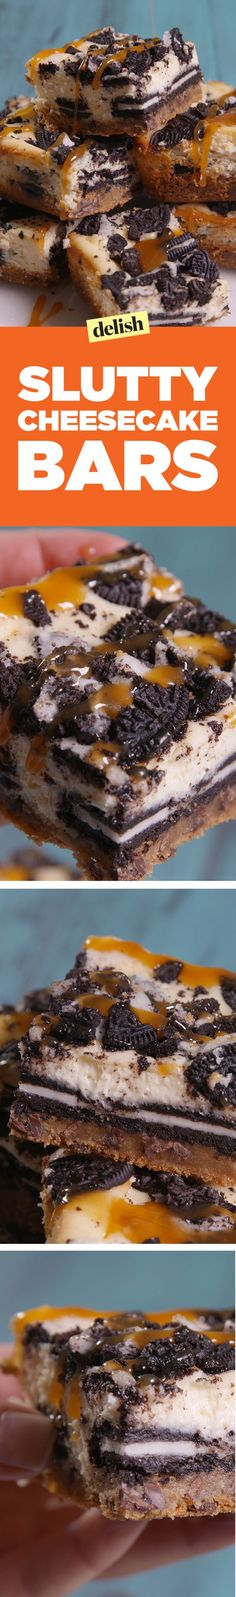 Slutty Cheesecake Bars Are Three Over-the-Top Layers of Decadence